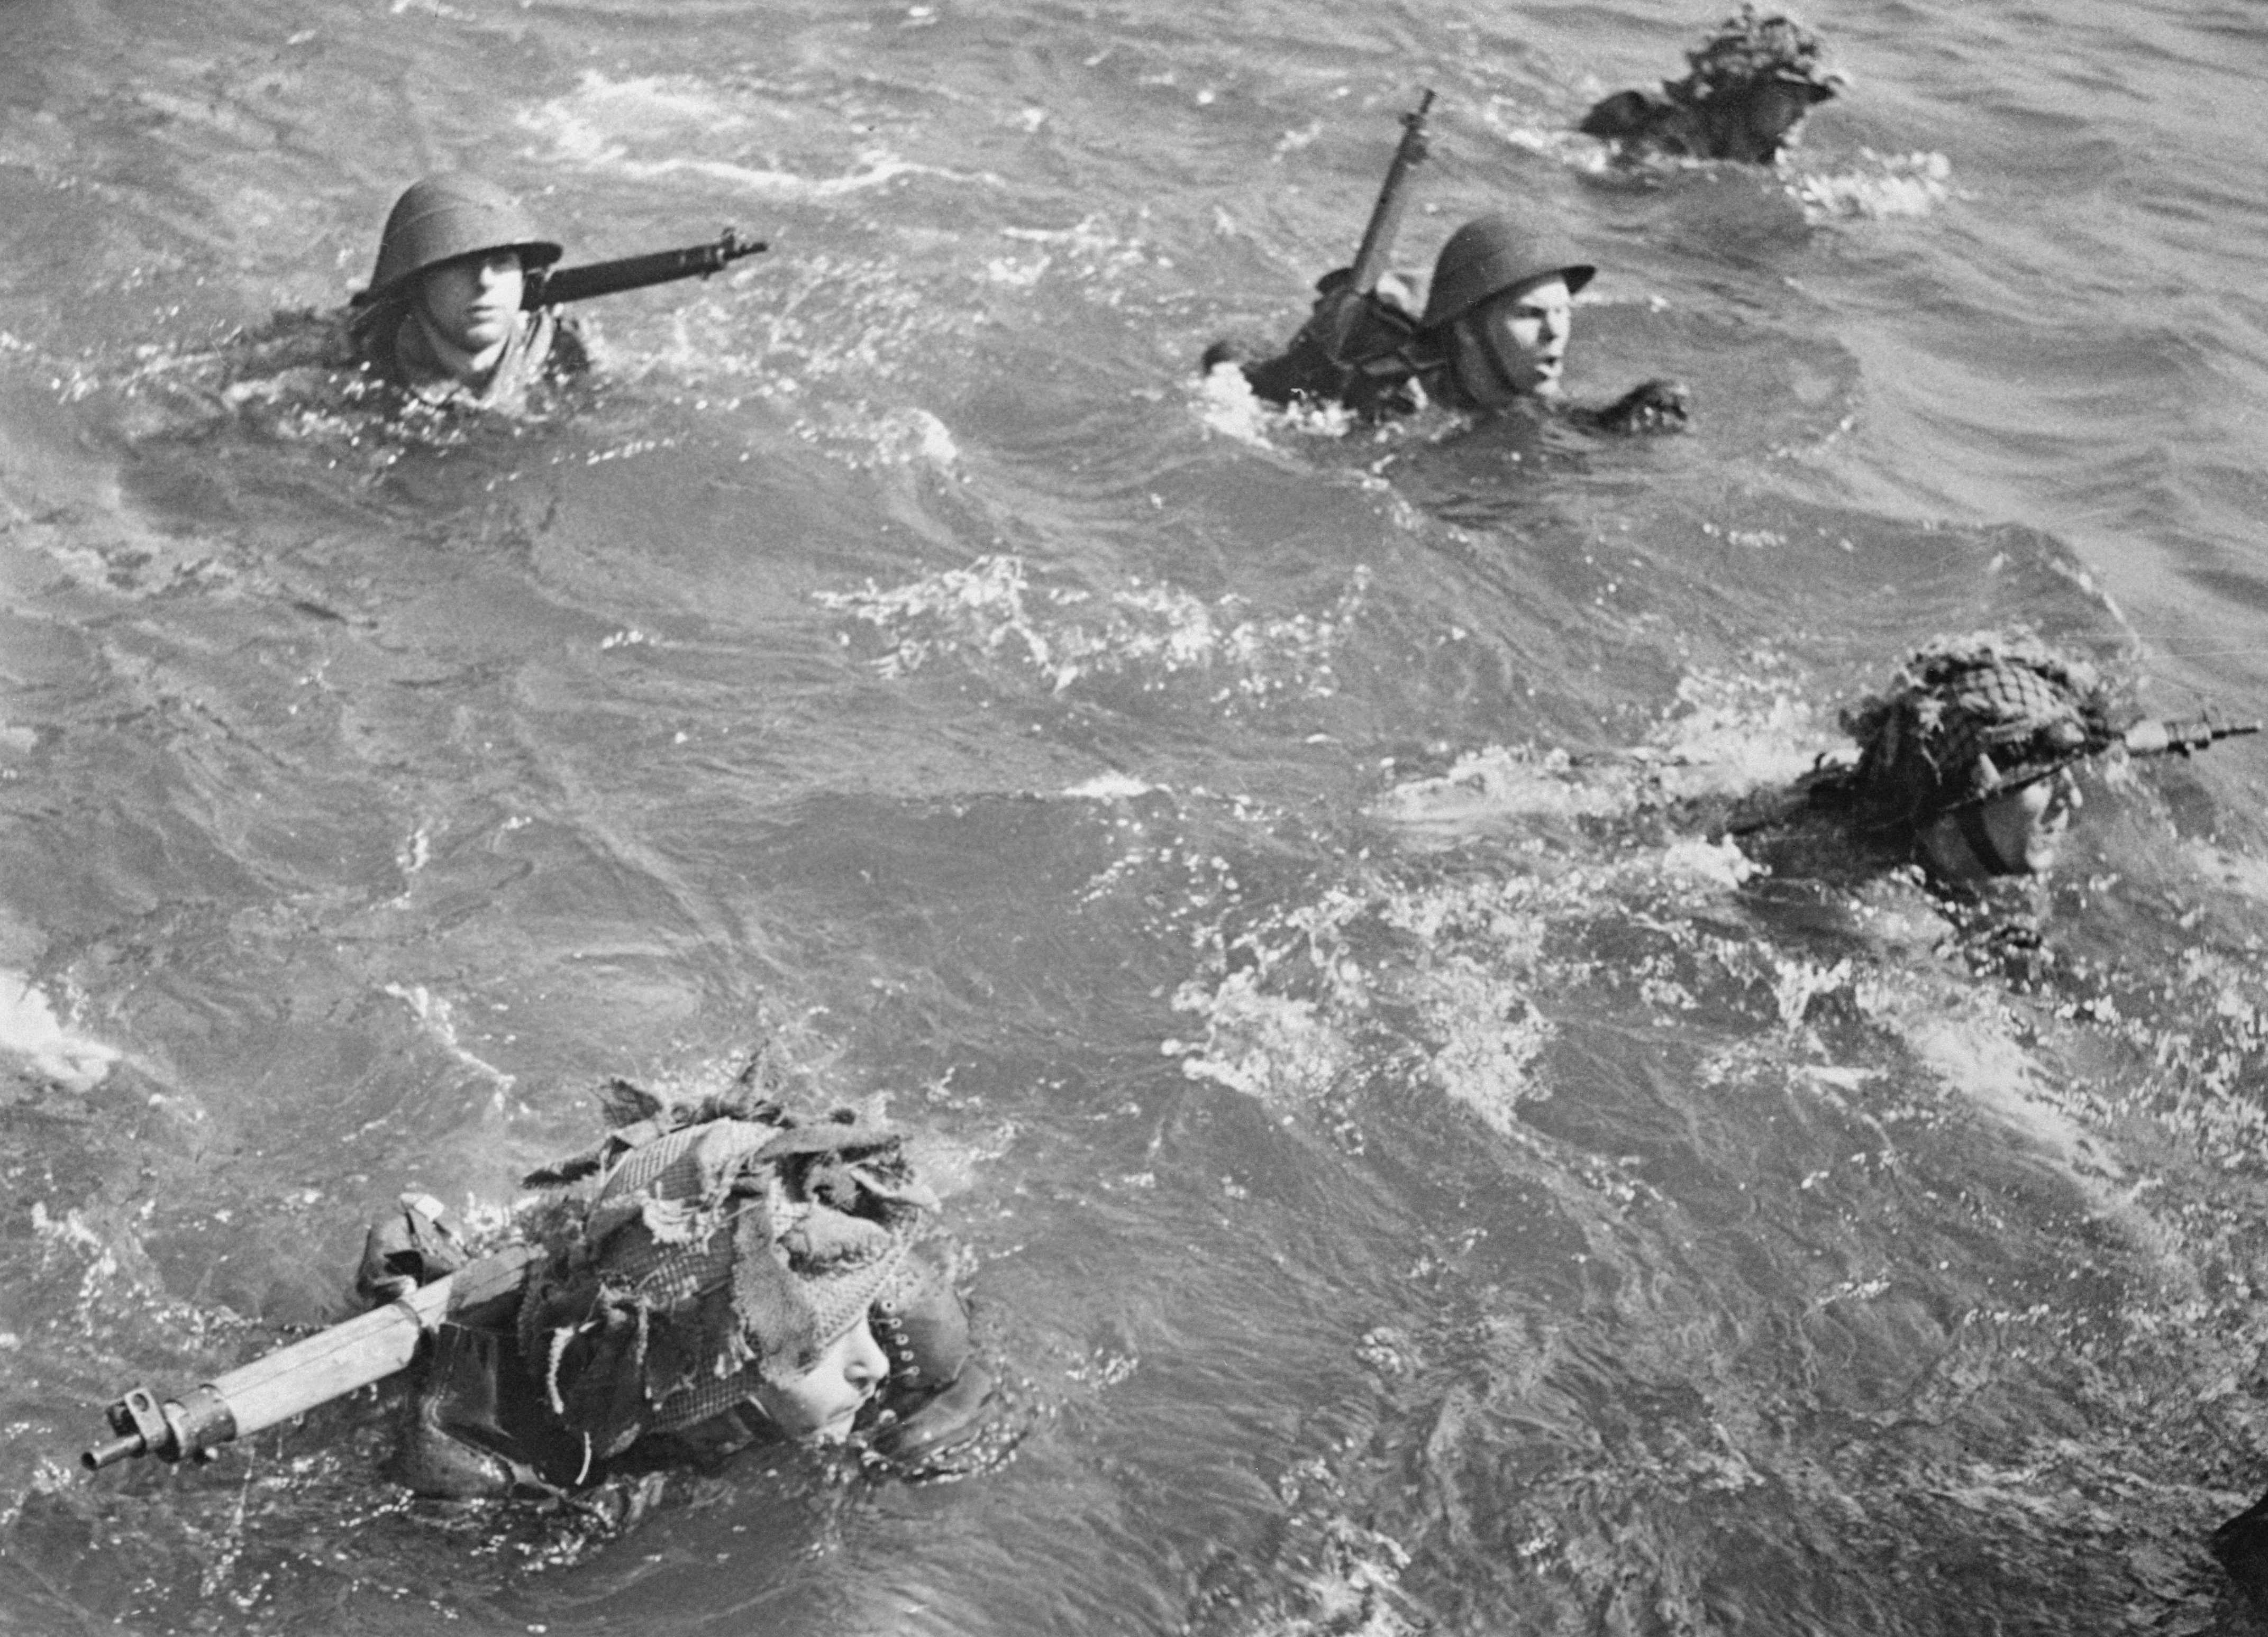 """British troops learn to swim in full kit on a training course in May 1944. """"A blind man could see something big was about to happen,"""" said one soldier. (Image by Getty Archives)"""